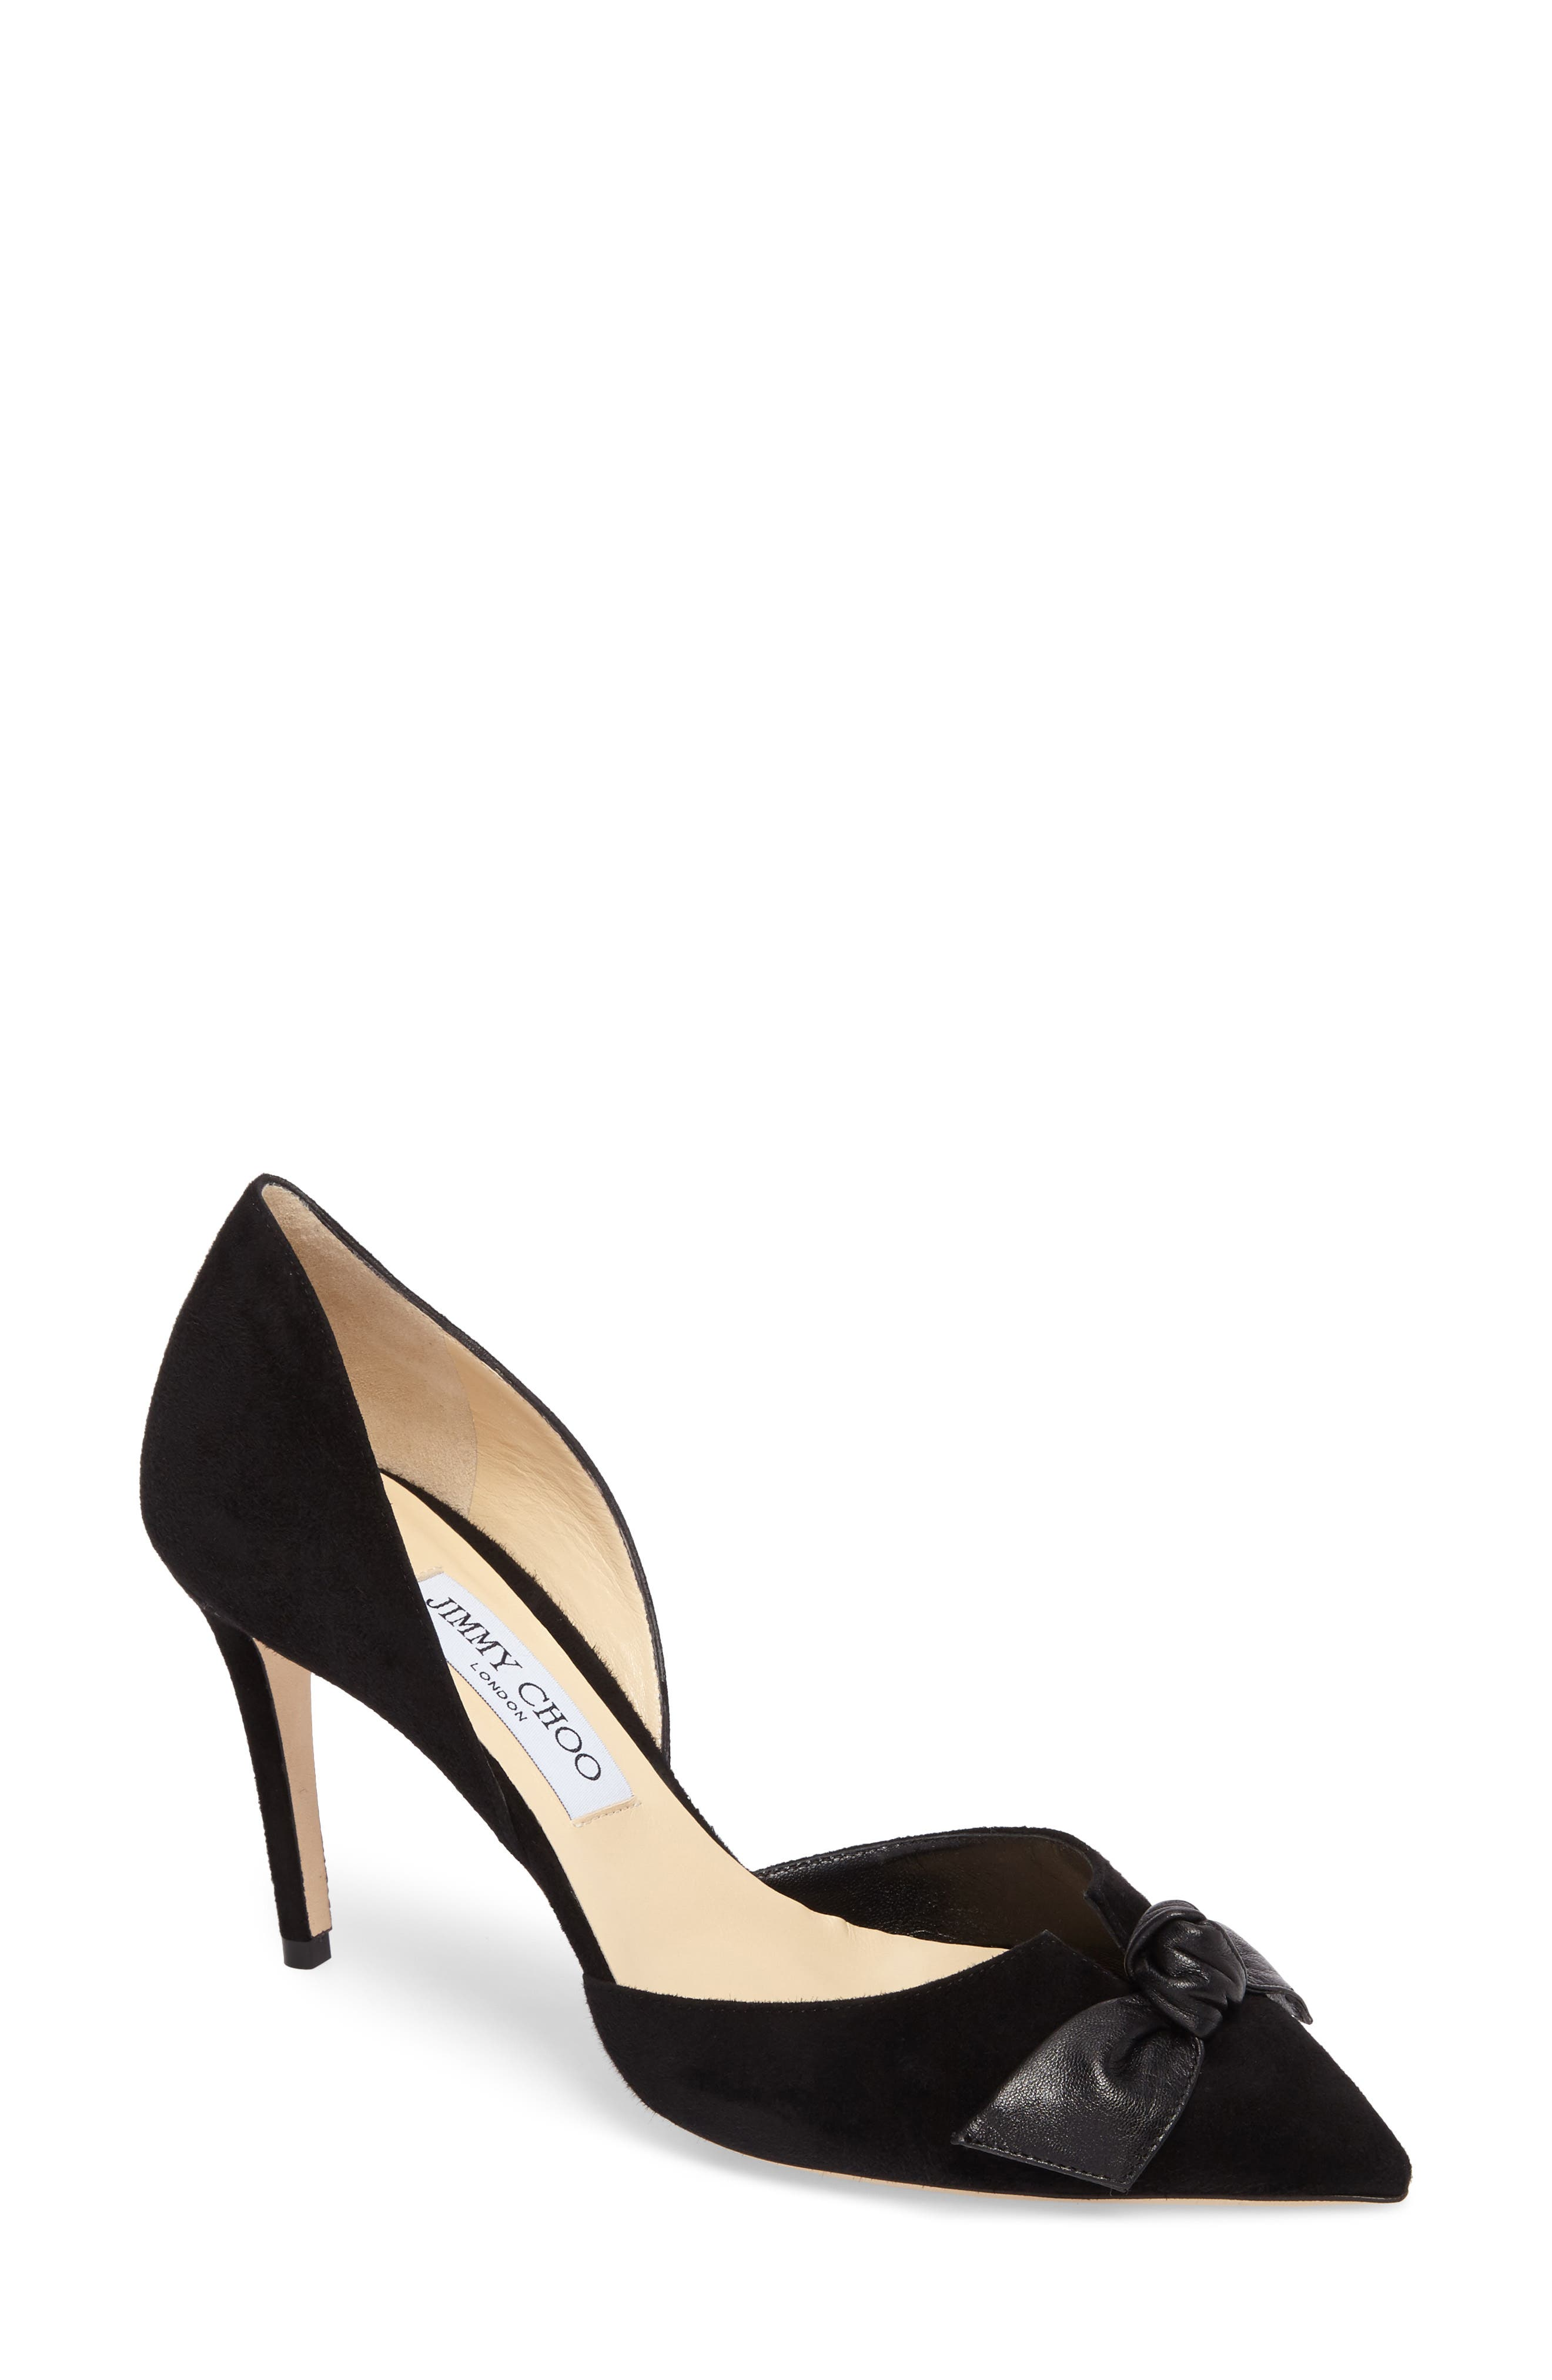 Twinkle Knotted Pump,                         Main,                         color, 010